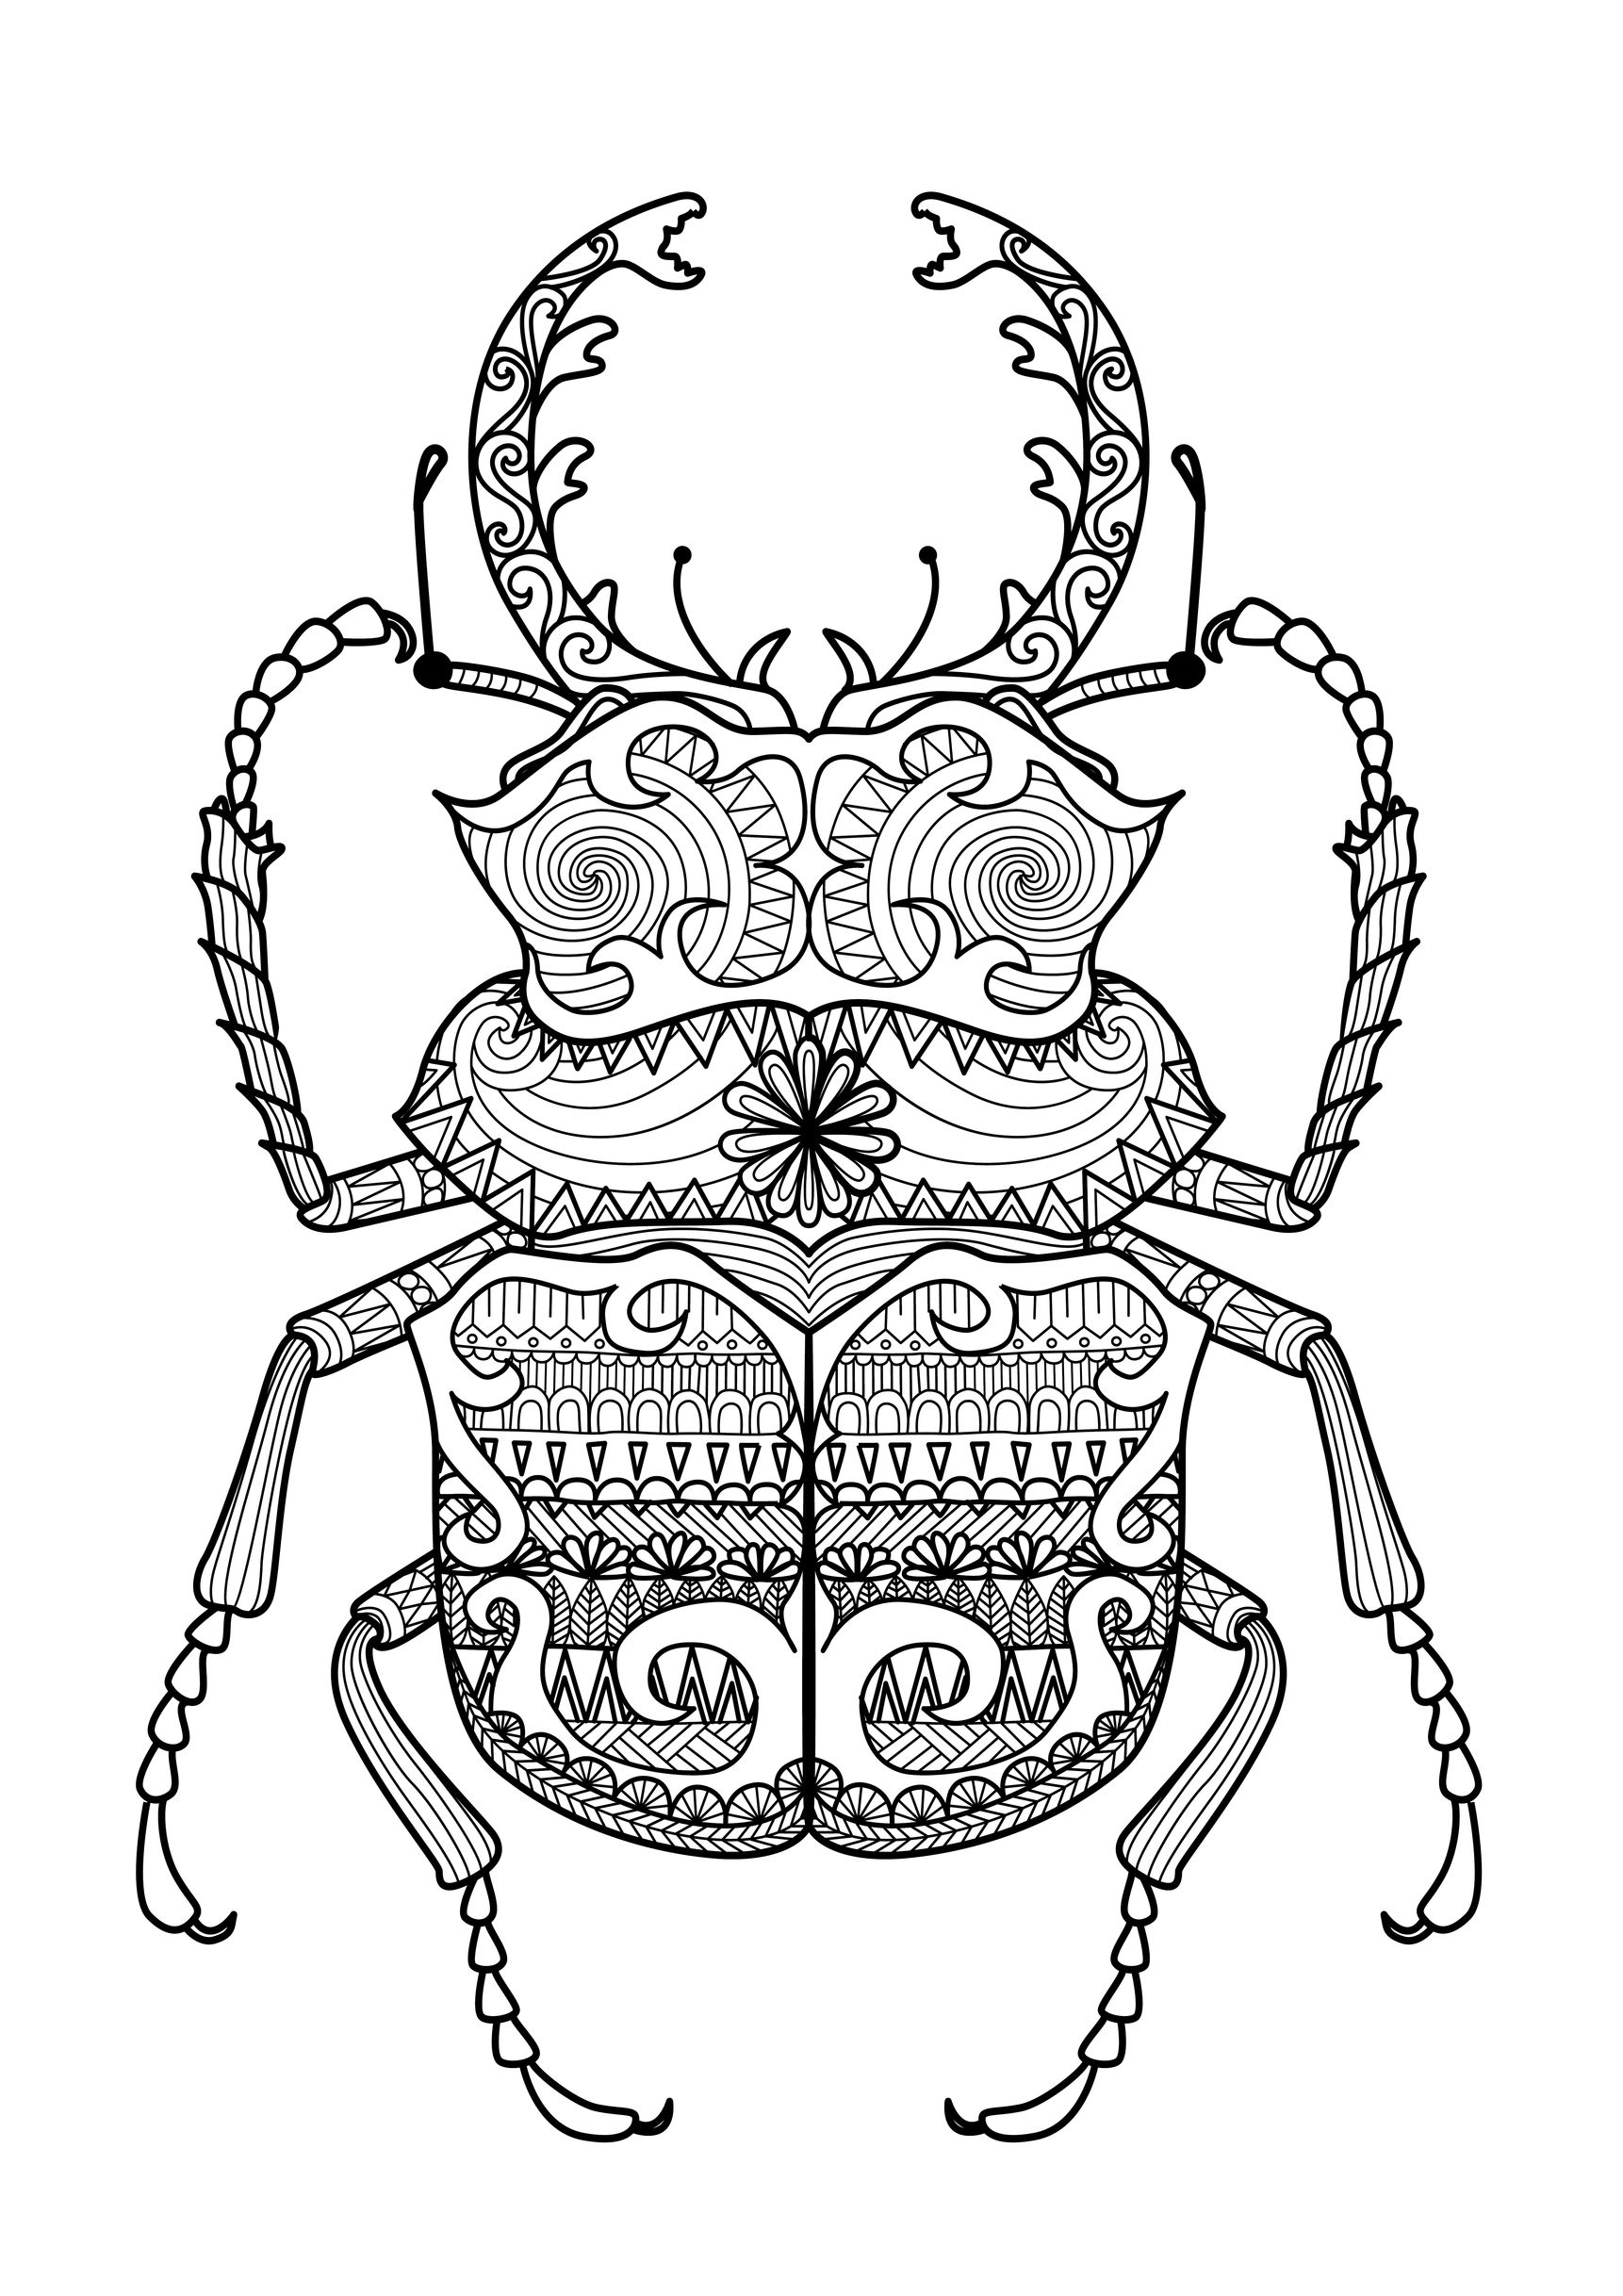 Zentangle beetle Zentangle Adult Coloring Pages Page 2